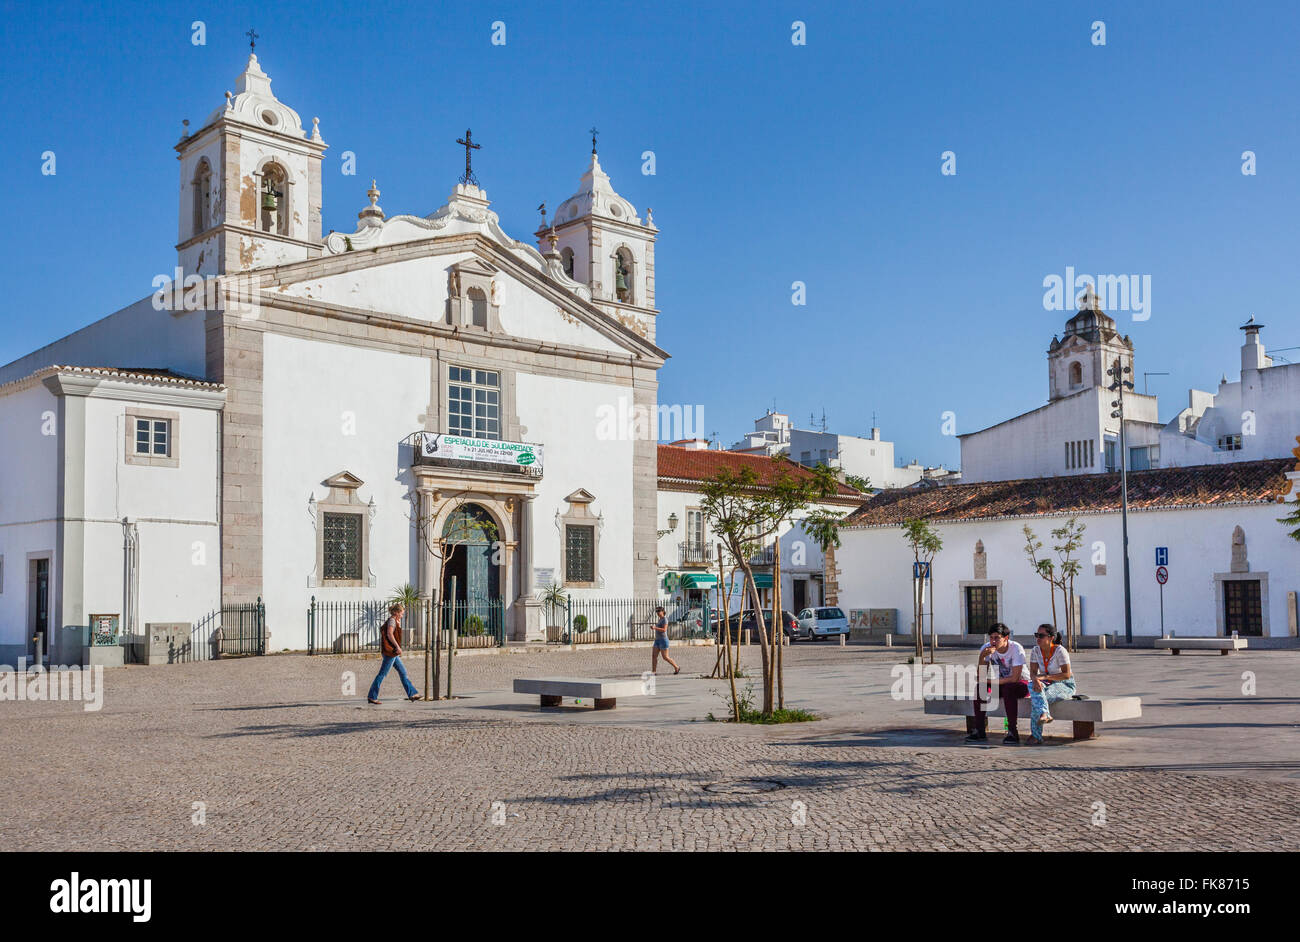 Portugal, Algarve, Lagos, Church of Santa Maria at Infante Dom Henrique Square in the historic center of Lago - Stock Image